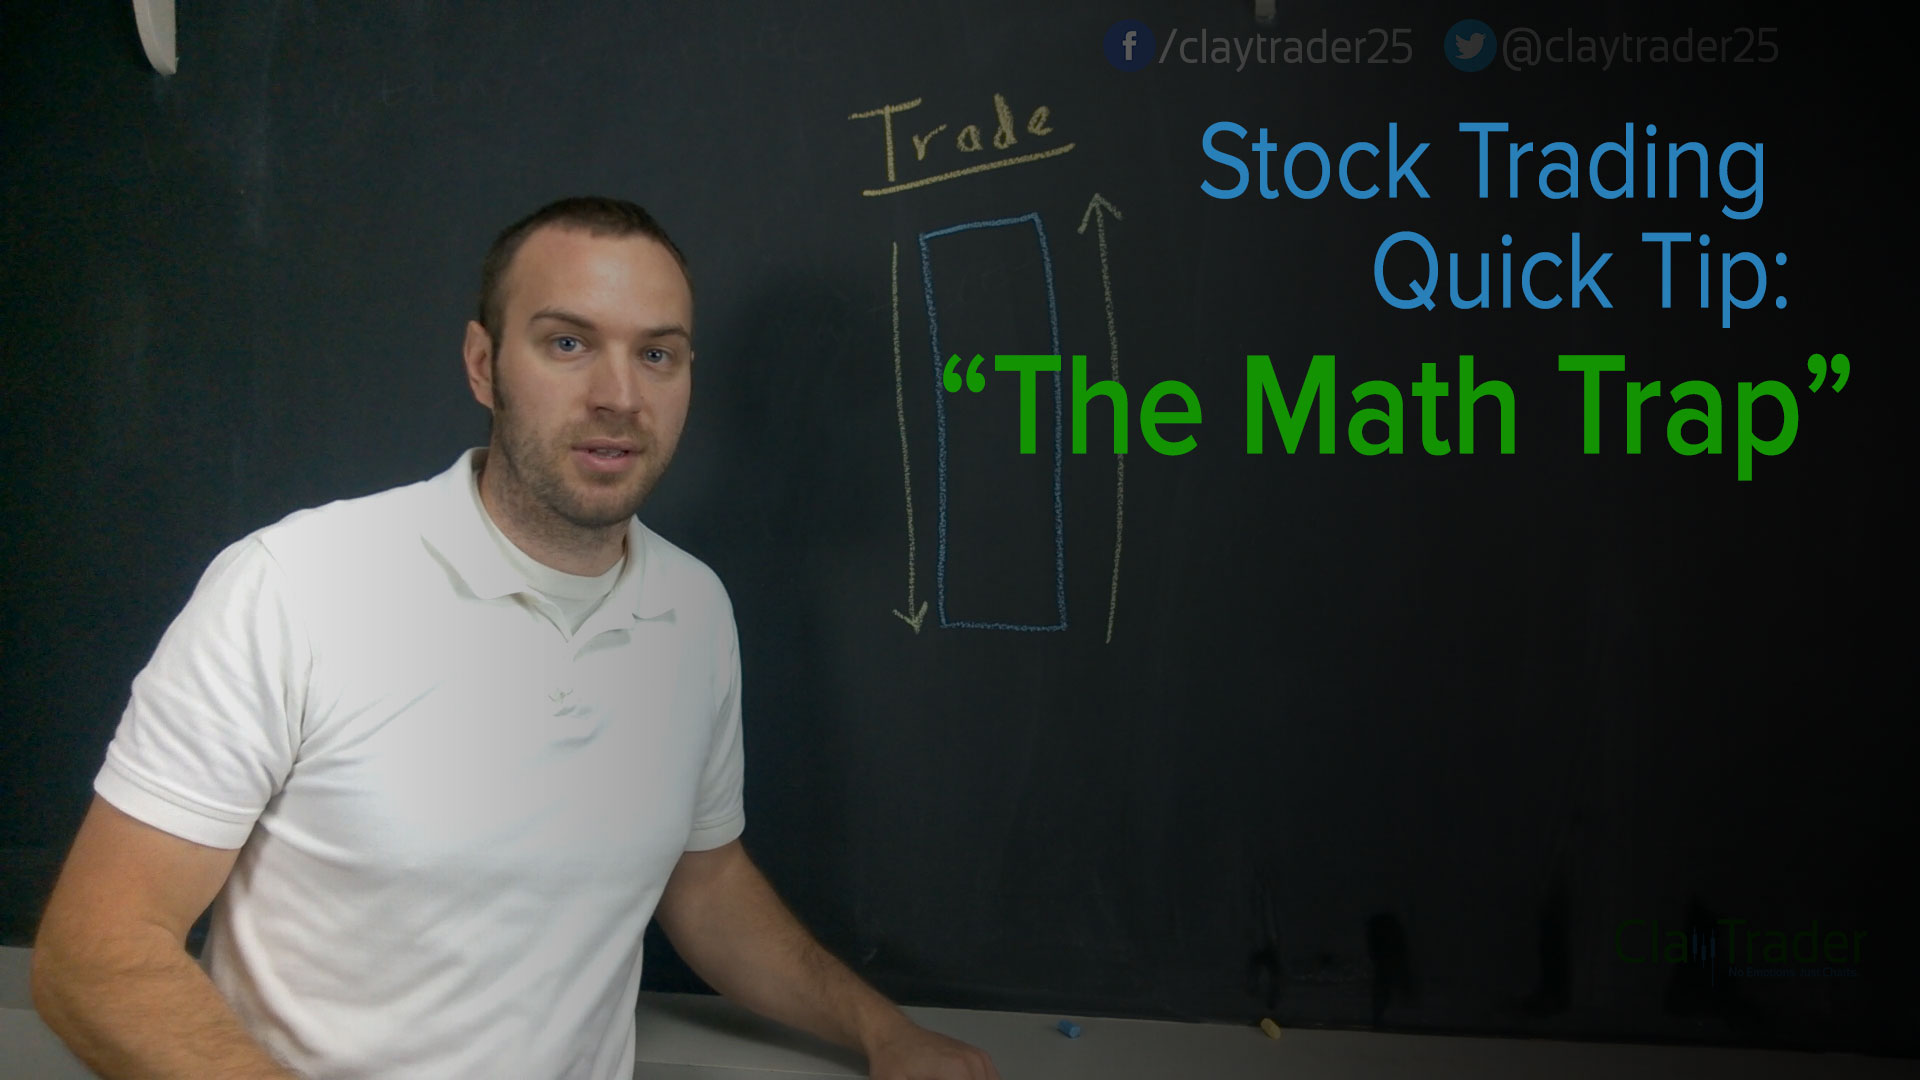 Stock Trading Quick Tip: The Math Trap